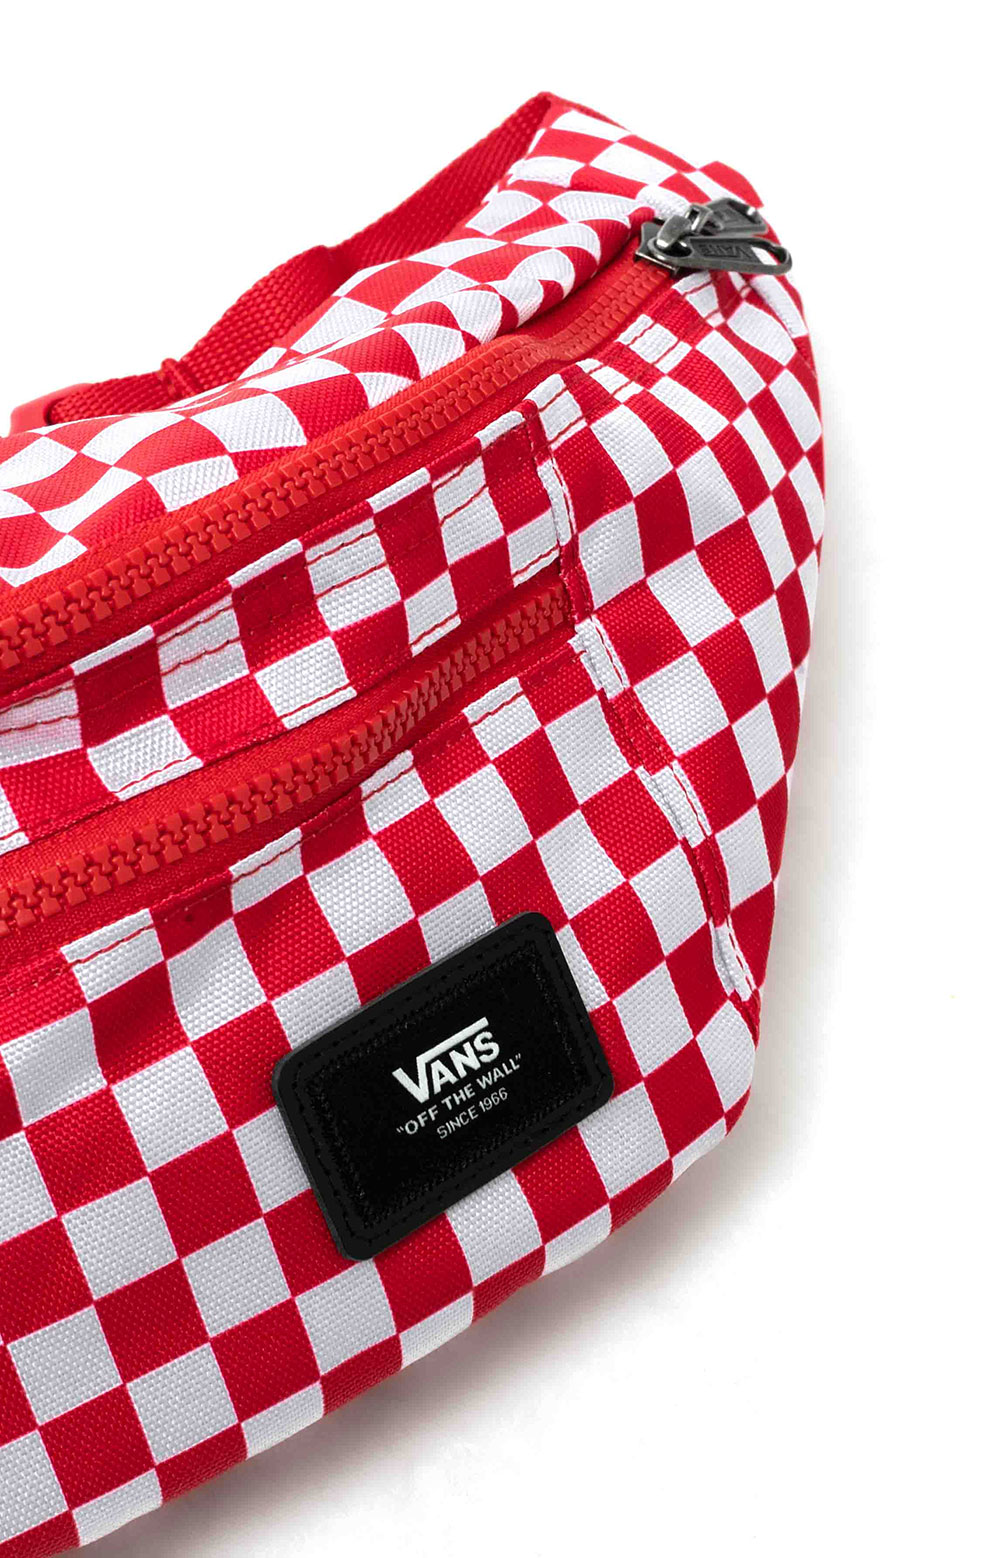 Ward Cross Body Pack - Red Check  3